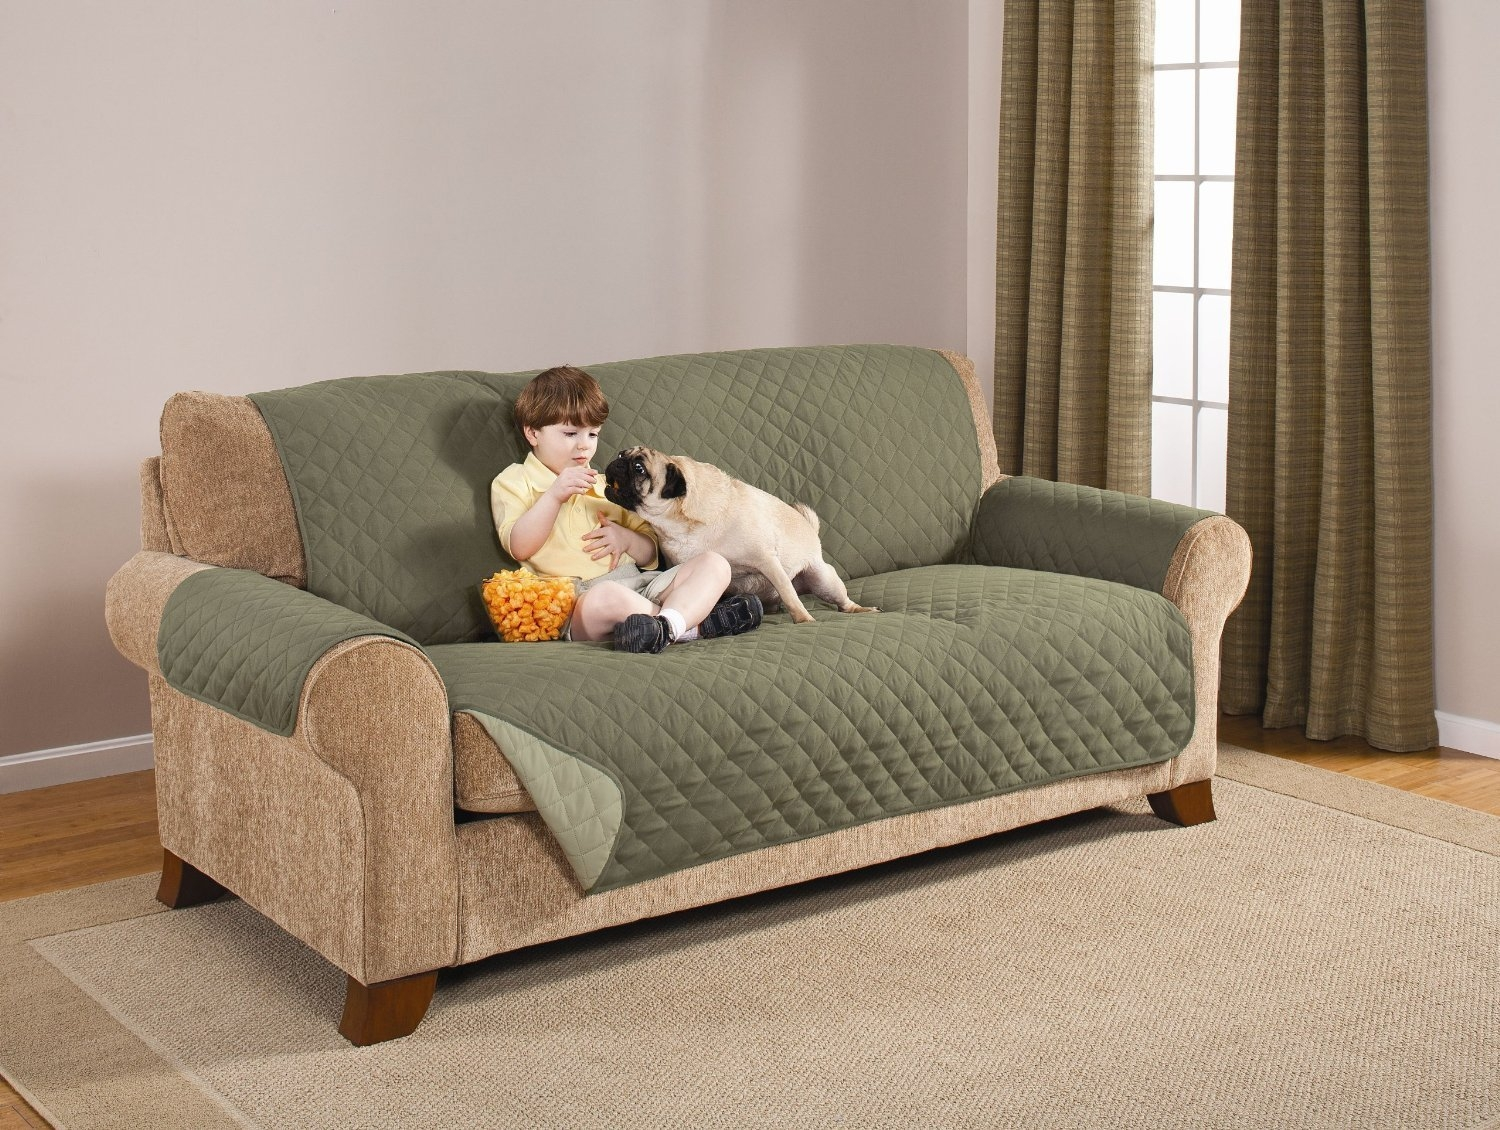 Top 10 Best Pet Couch Covers That Stay In Place Couch Covers For For Sofa And Chair Covers (Image 15 of 15)